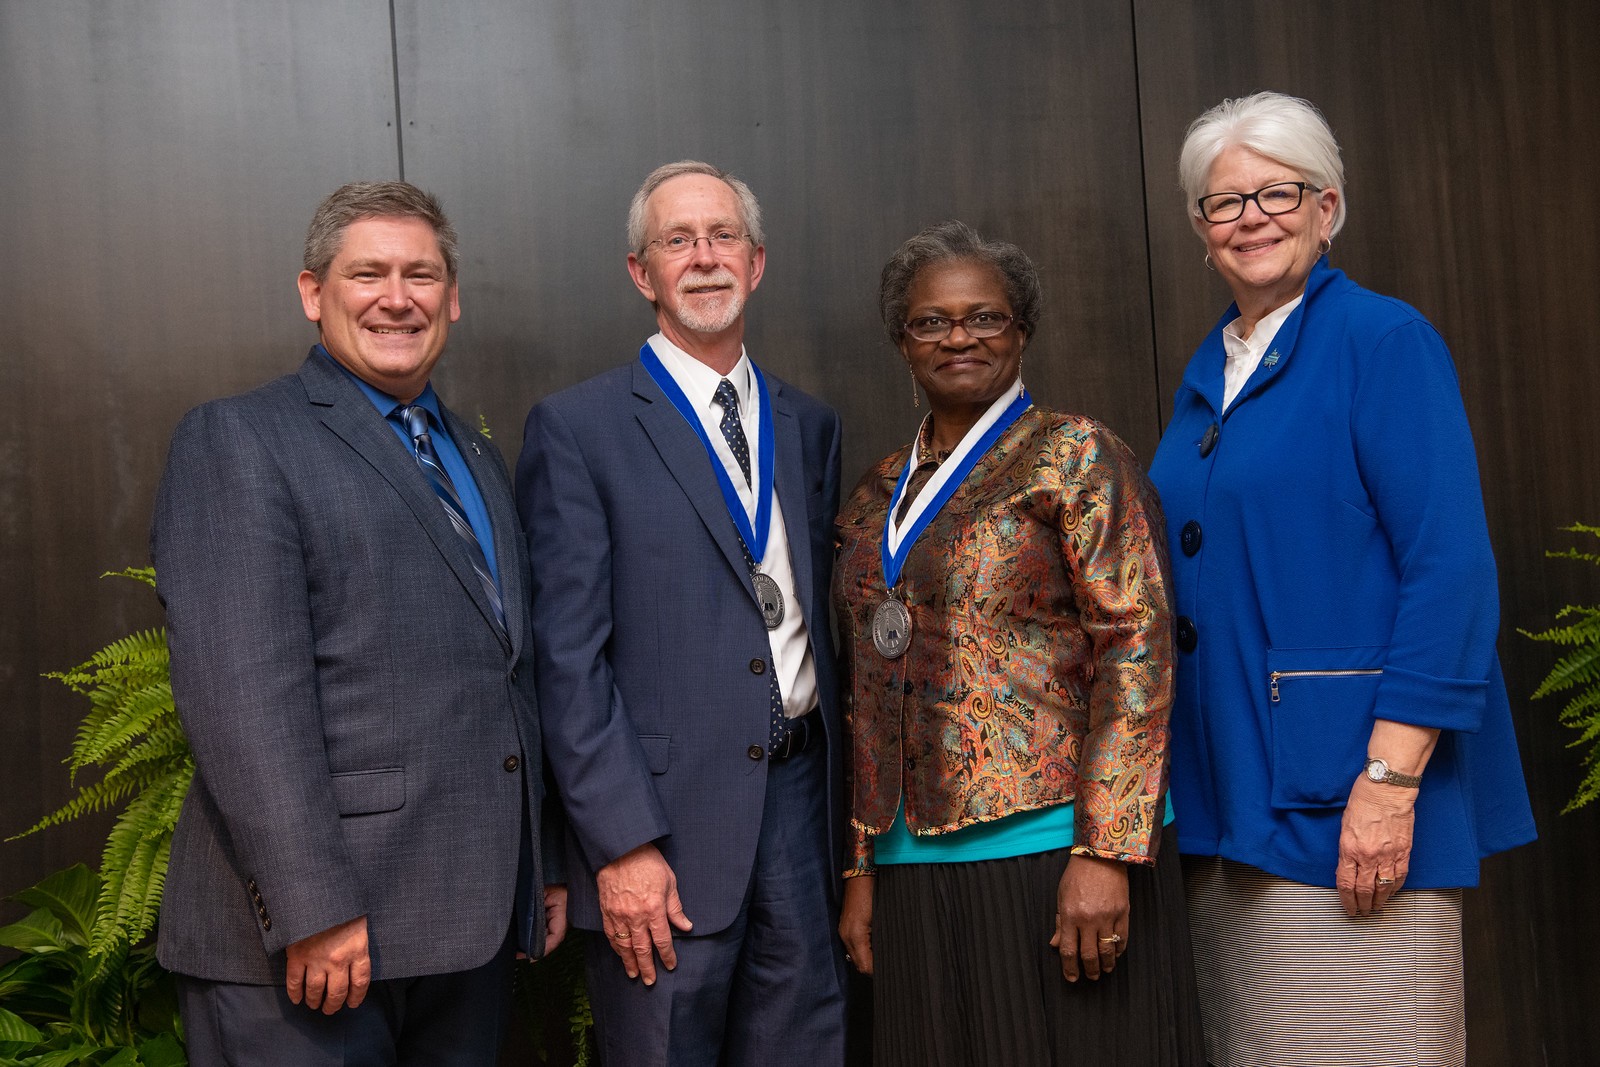 Muyumba, Perrin receive President's Medal